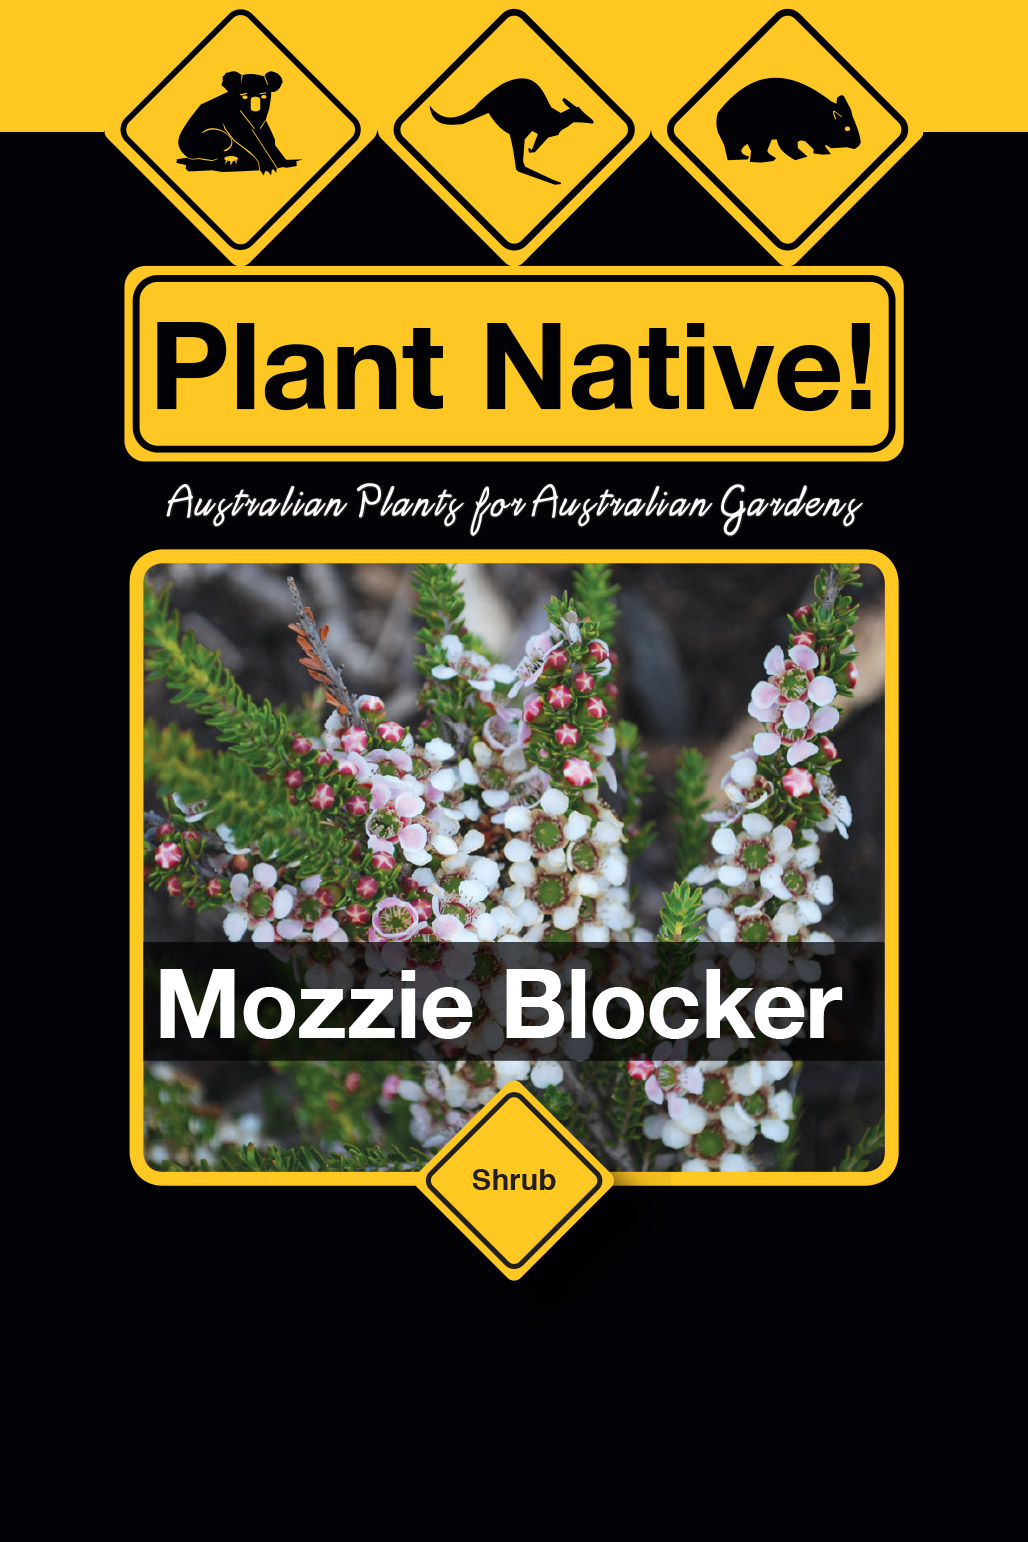 Mozzie Blocker - Plant Native!